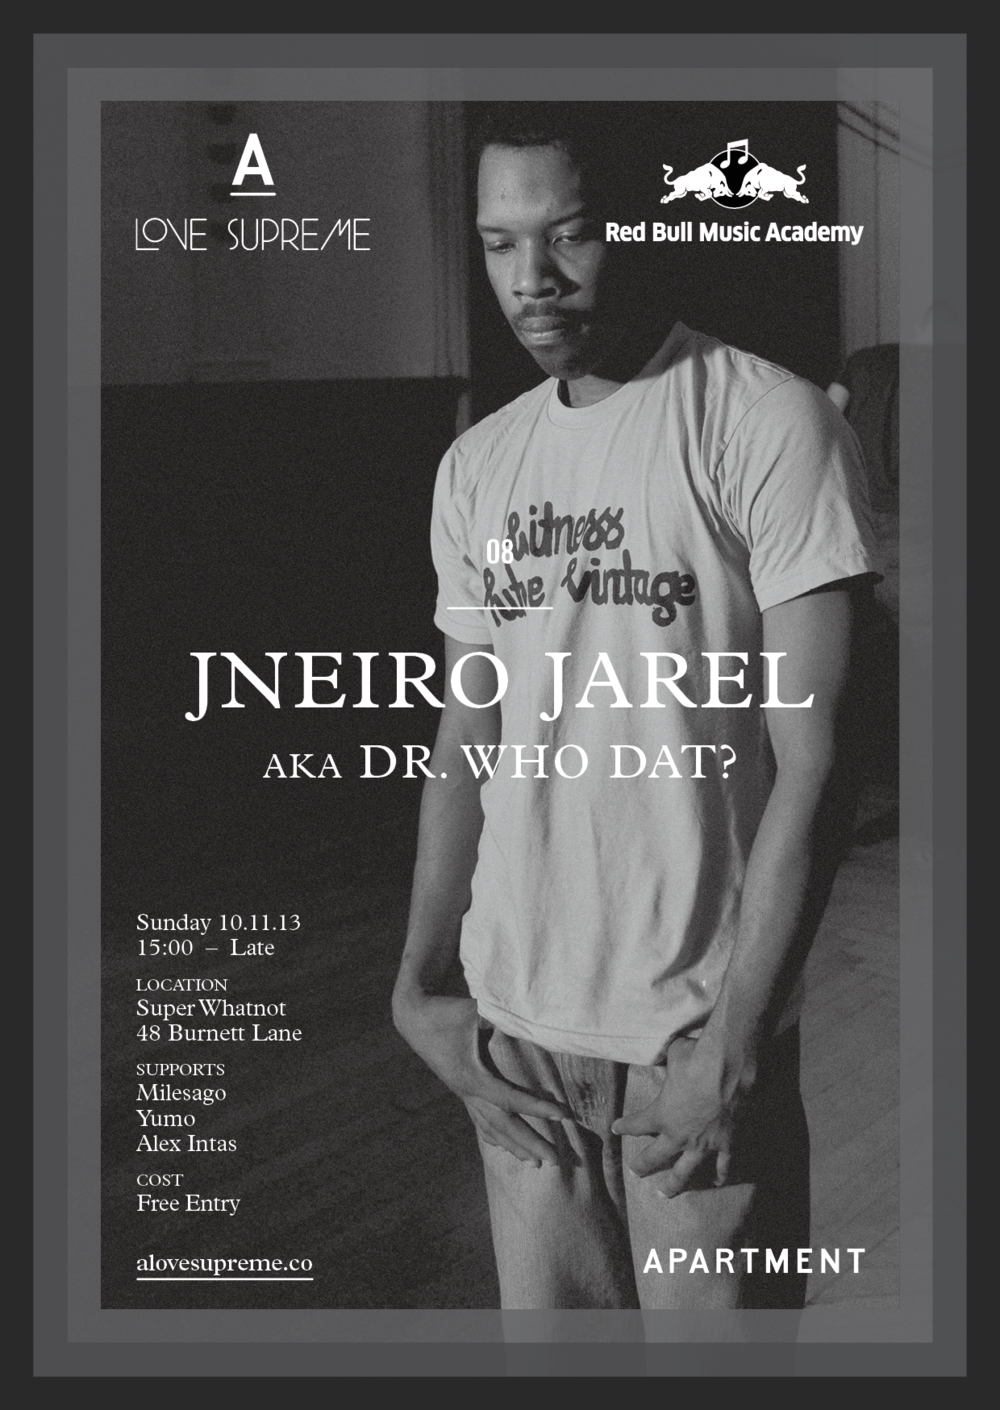 ALS-alovesupreme-08-jneiro-jarel-postcard-press-.png